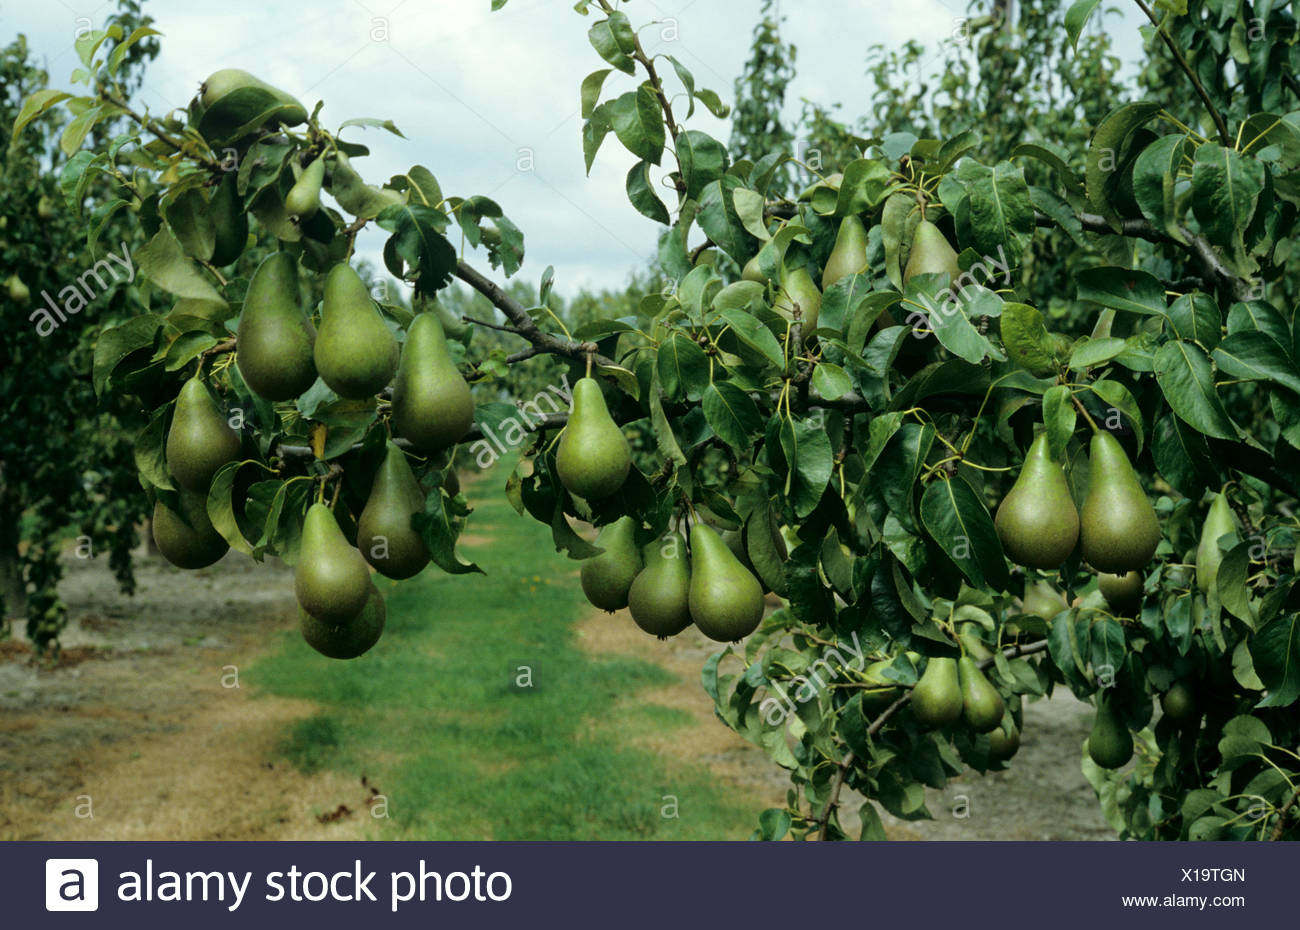 Heavy crop of ripe pears variety Conference on the tree - Stock Image